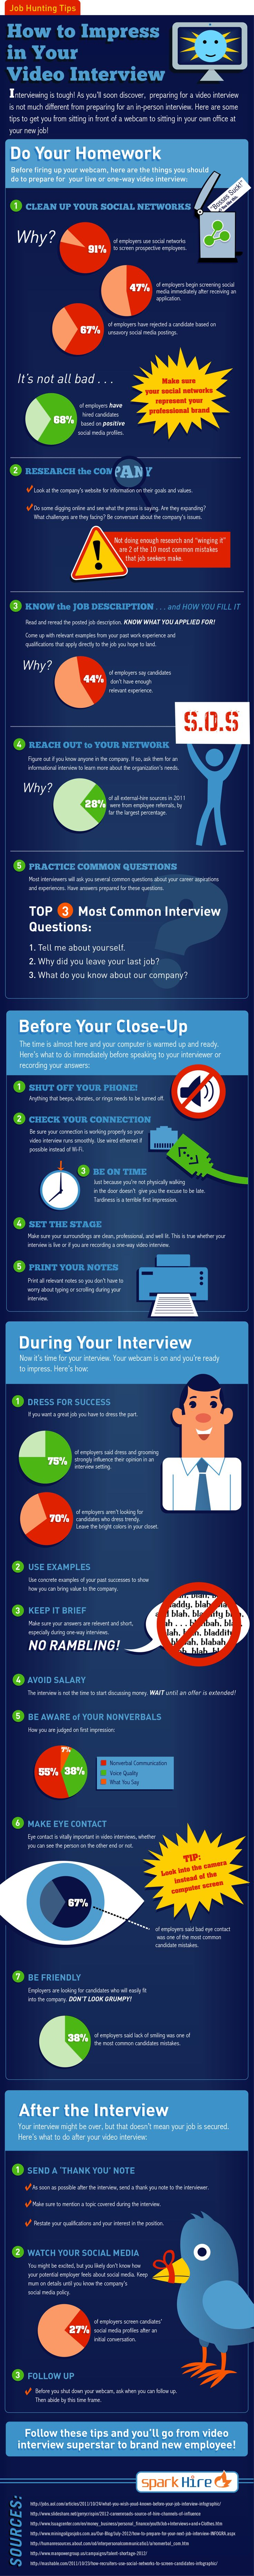 17 best ideas about interviewing tips interview 17 best ideas about interviewing tips interview questions job interview tips and interview